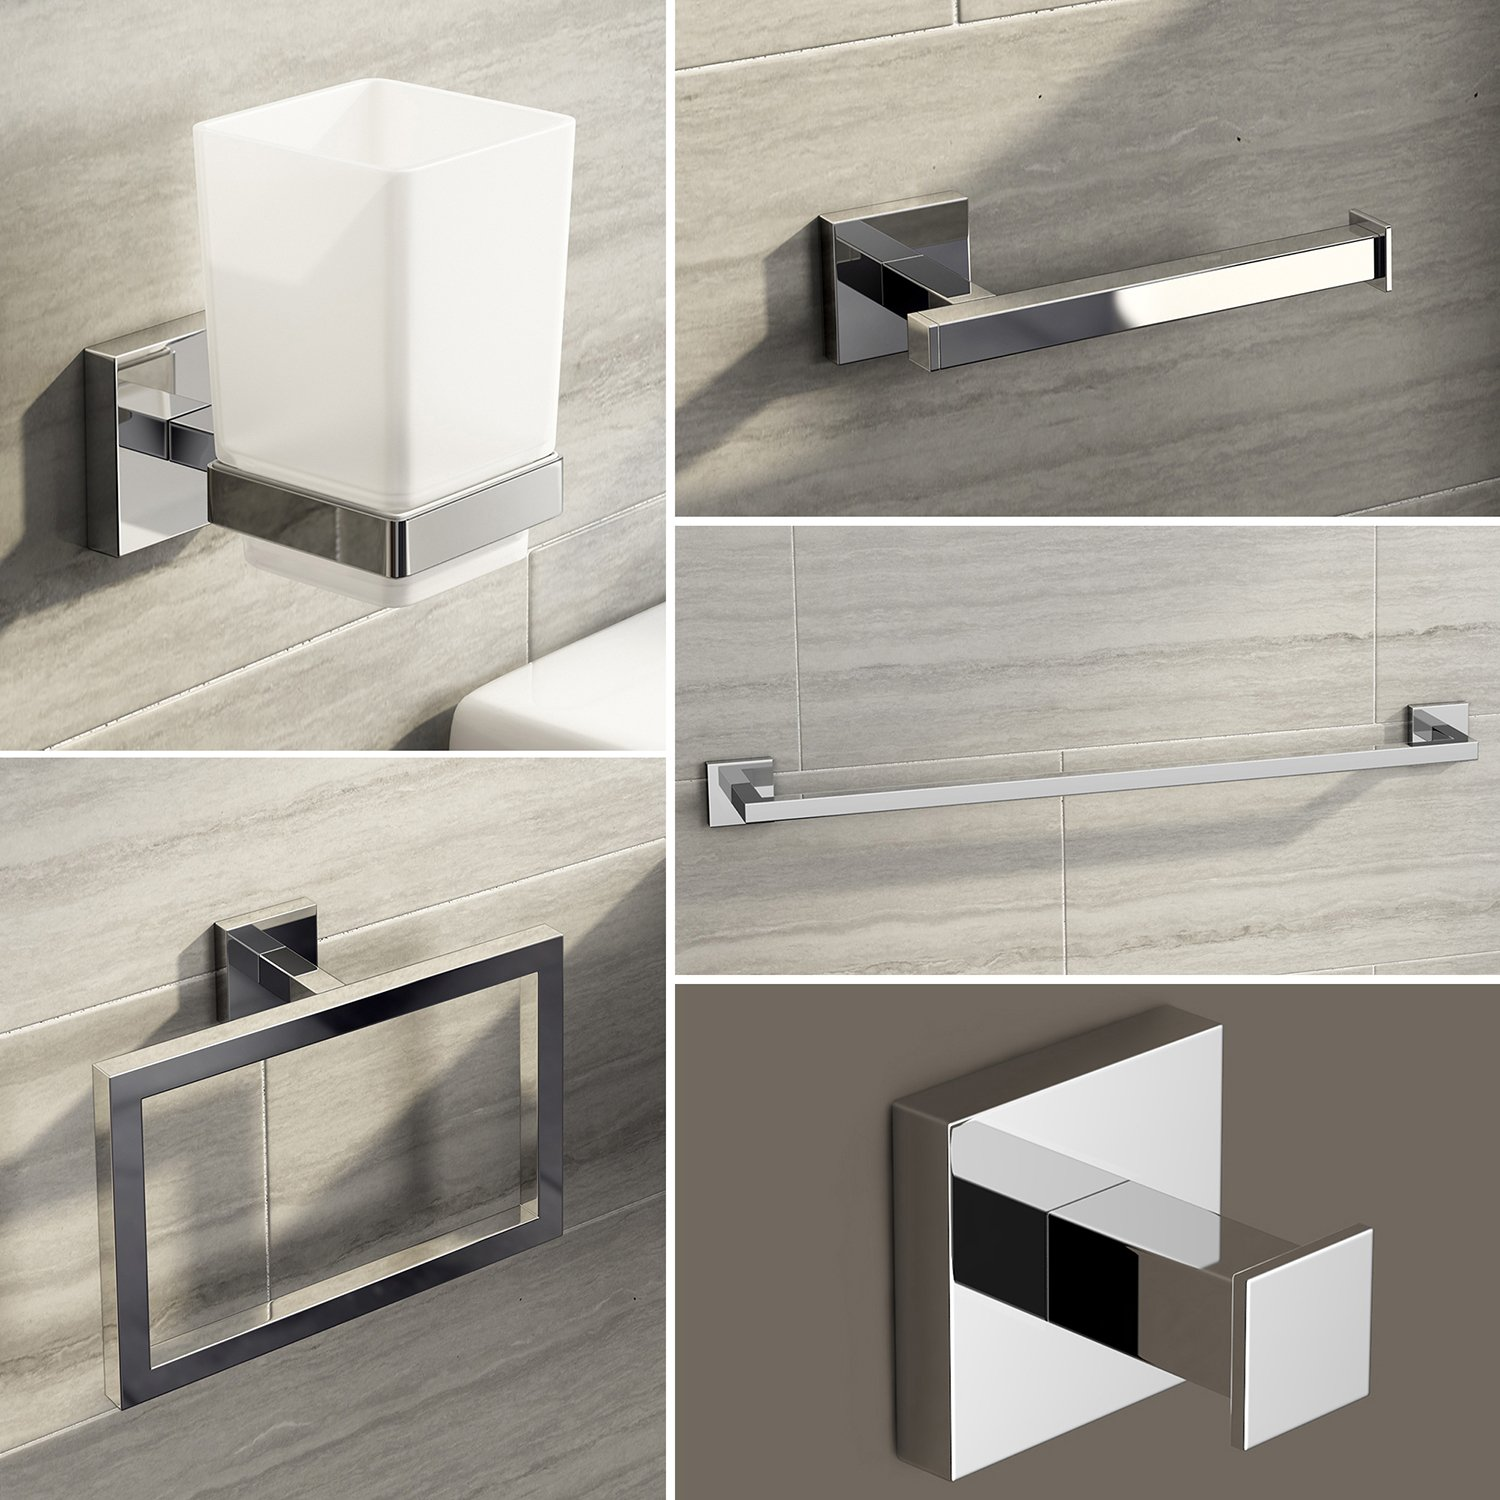 iBathUK Modern Chrome Square Bathroom Accessory 5 Piece Complete Set ACCJS1